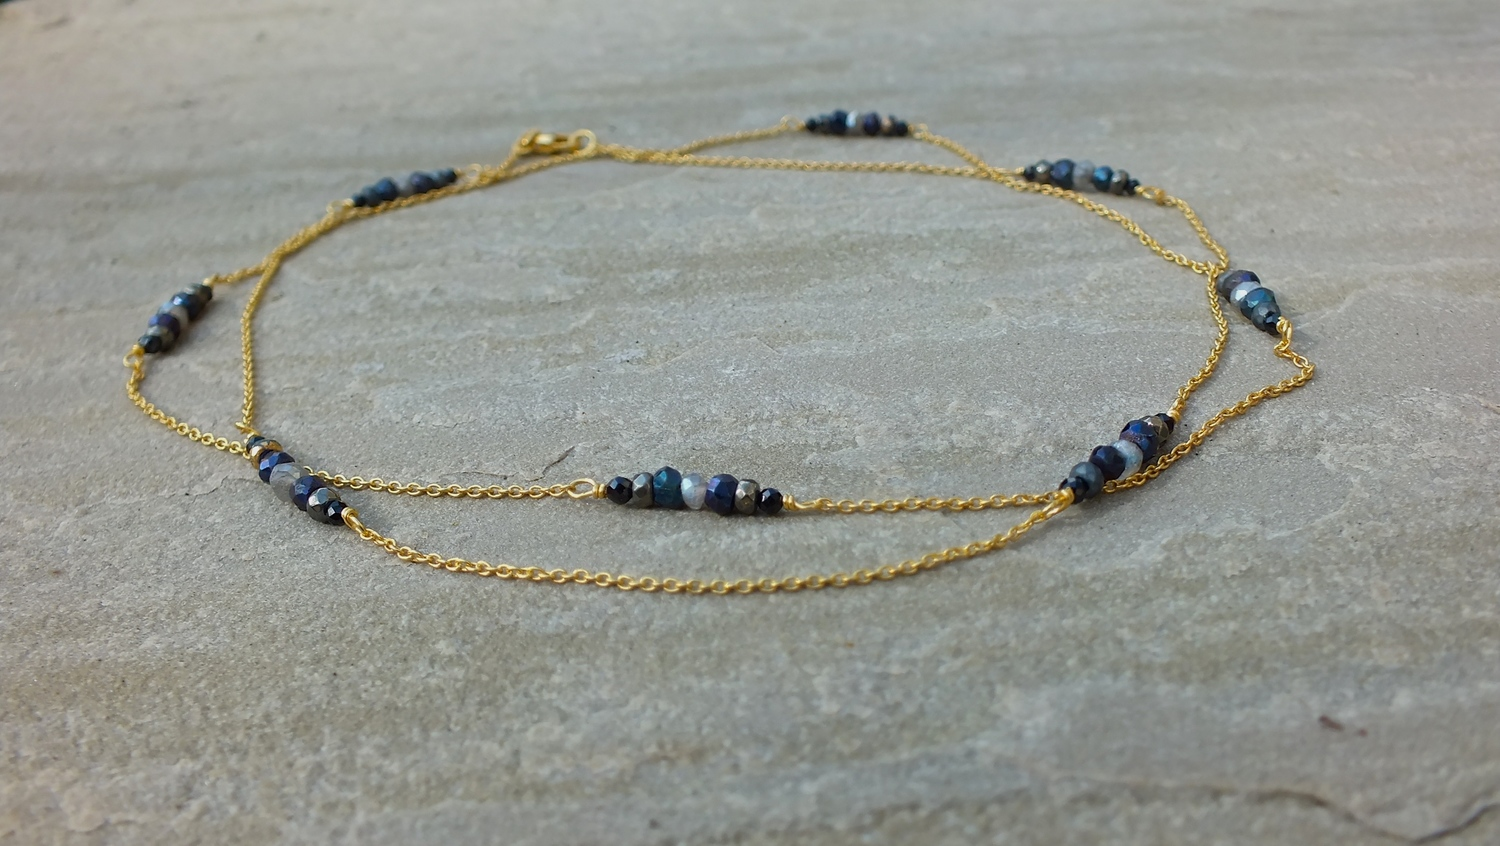 labradorite and garnet illusions pyrite handcrafted products necklace